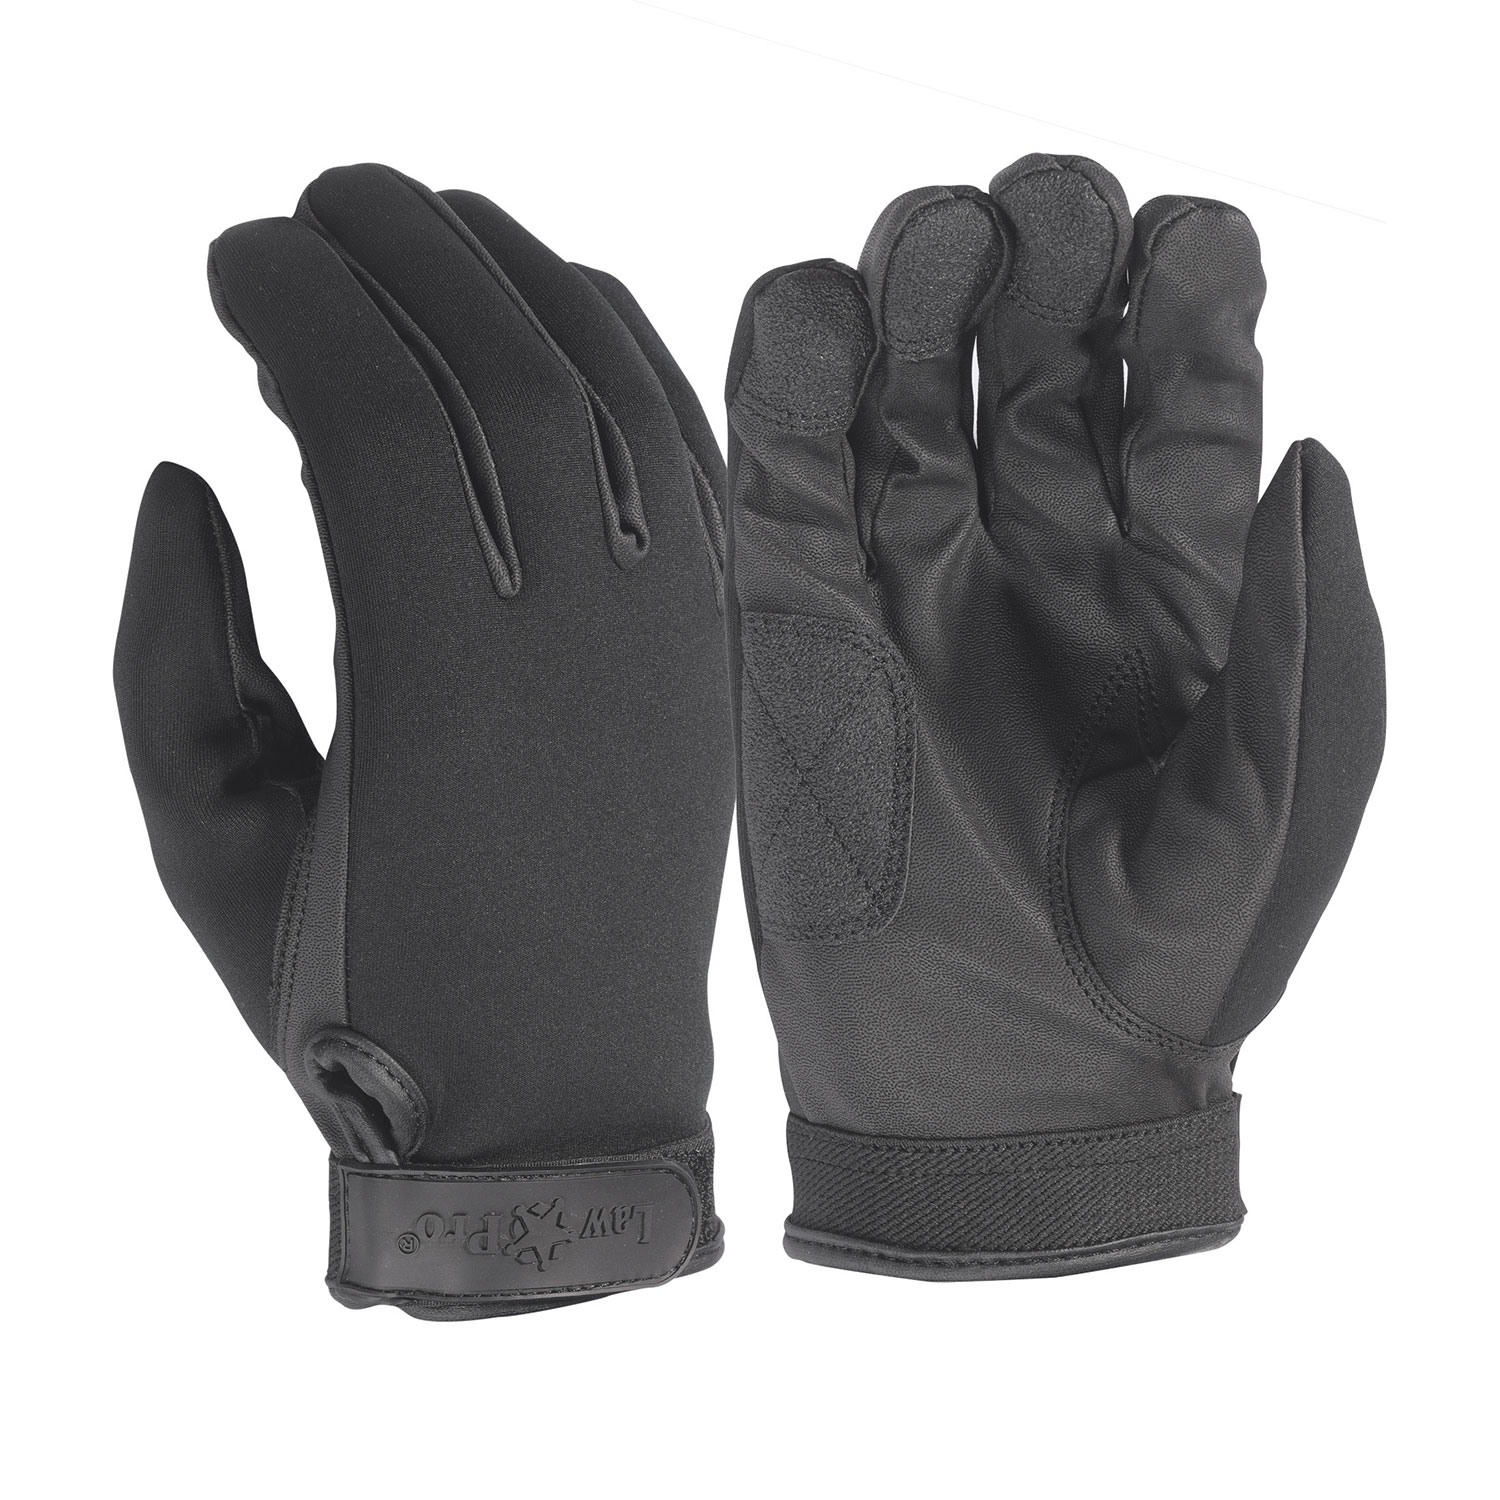 LawPro Neoprene Uniform Gloves